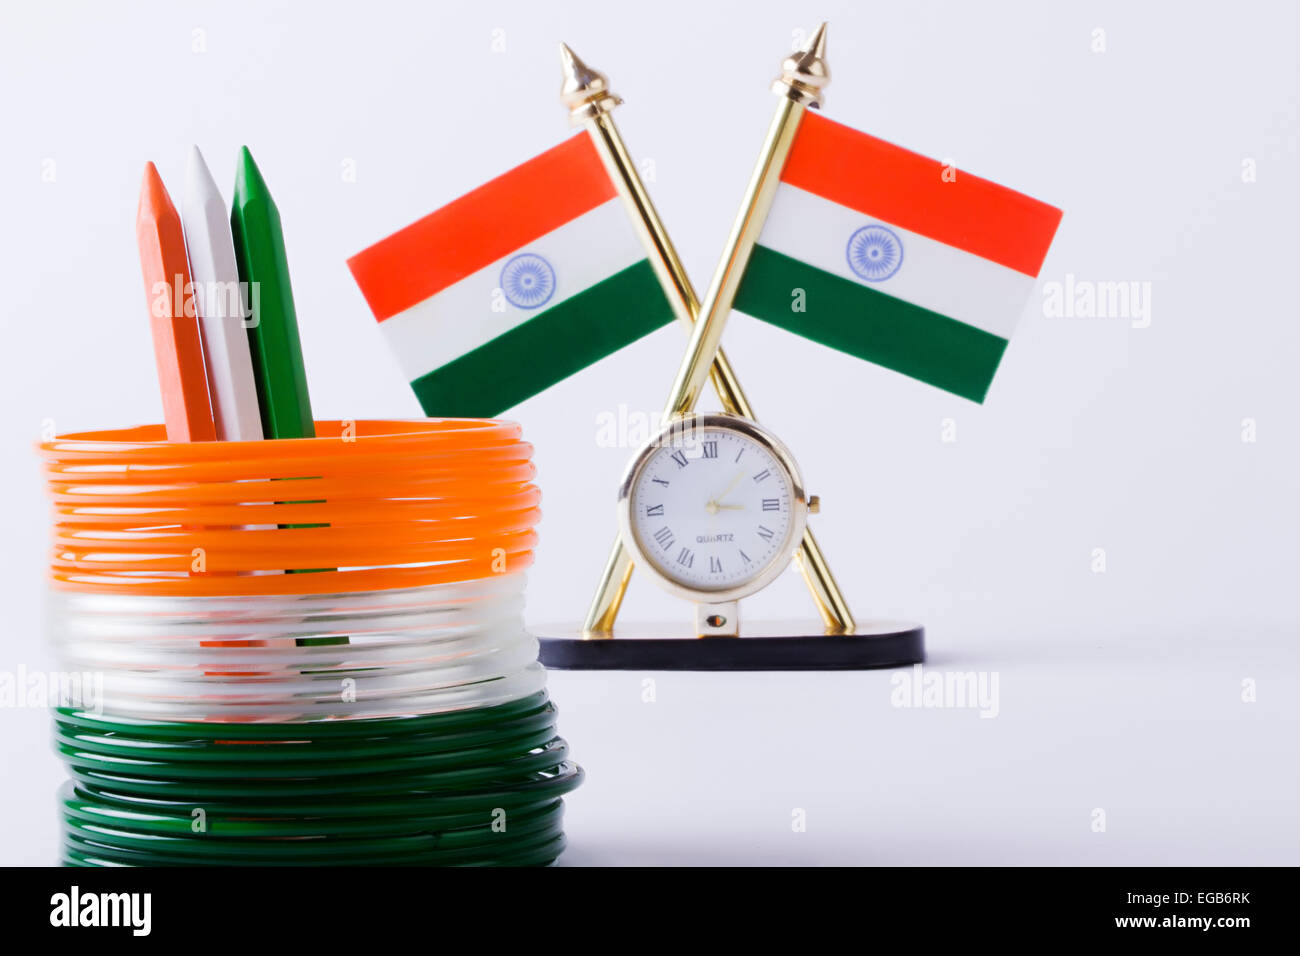 Flag Color Clock and Bangles Stand Arranging Pencil Stock Photo ...